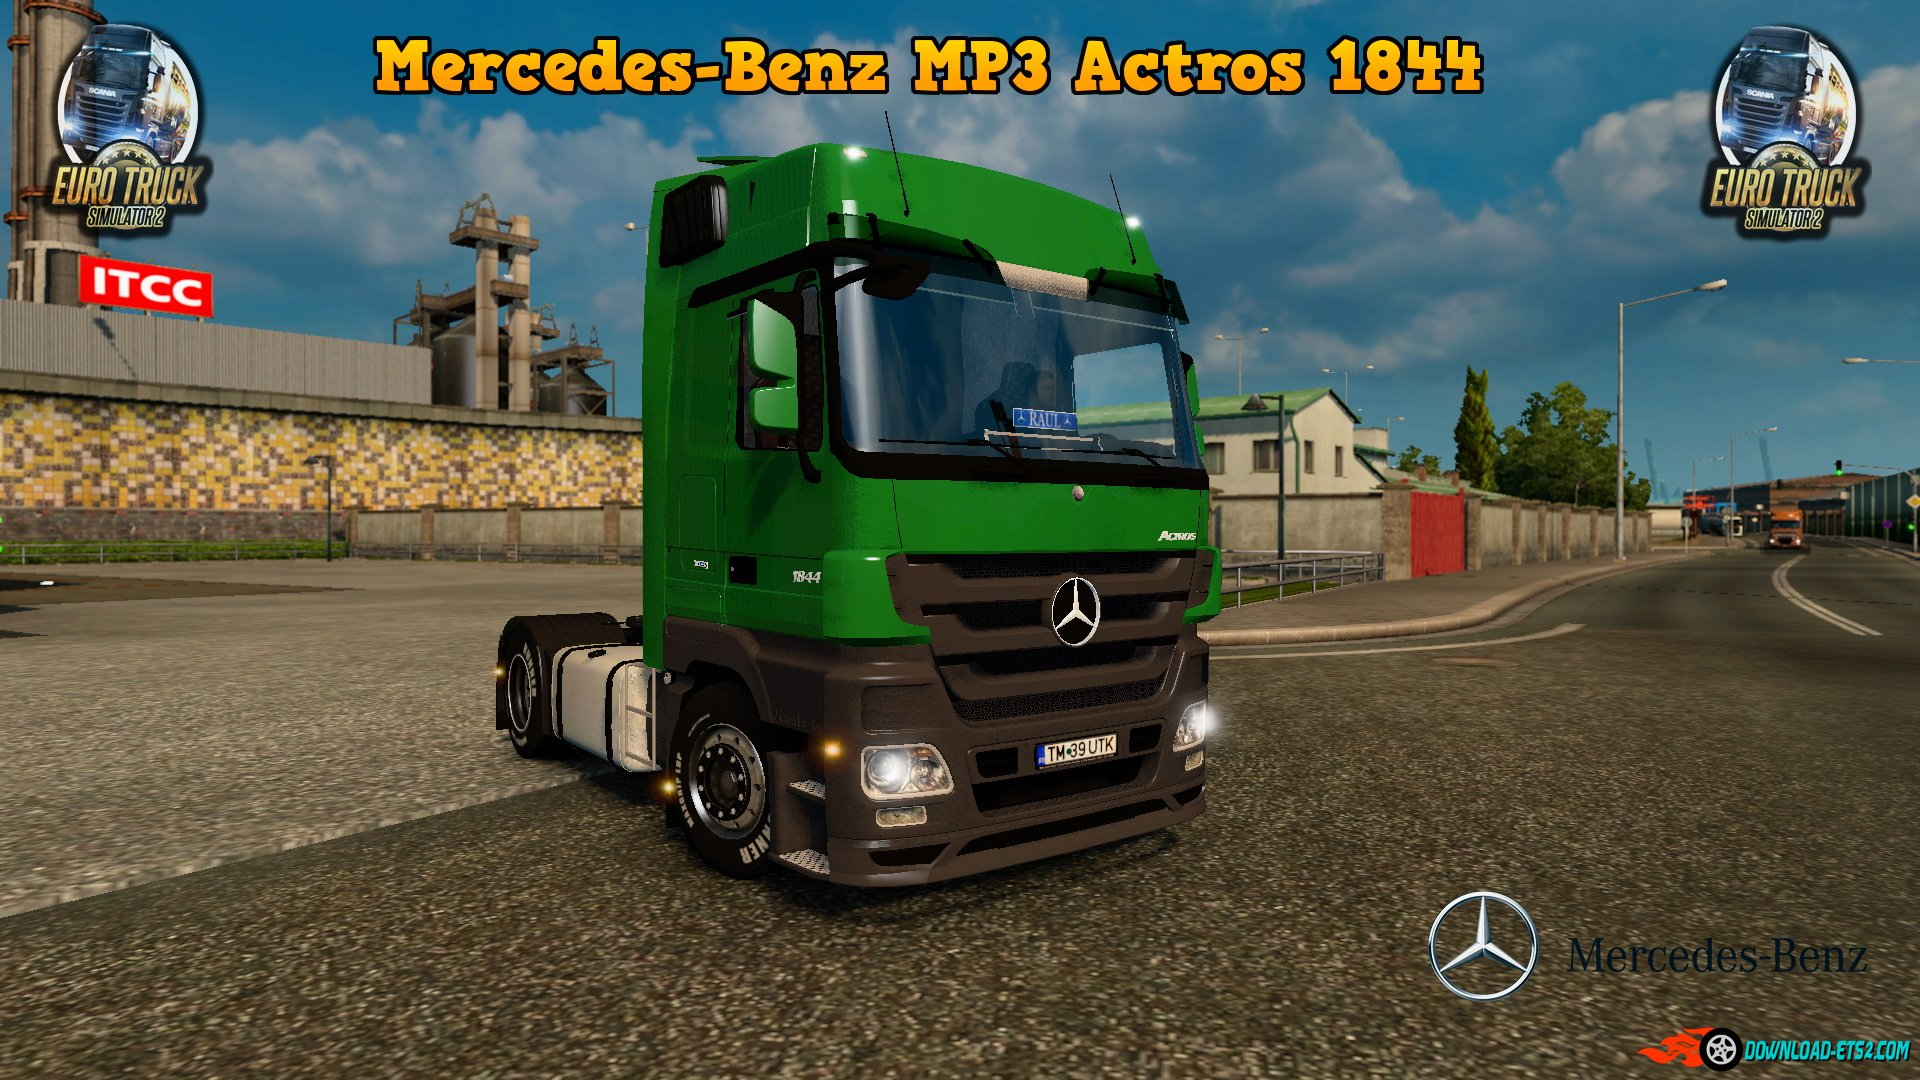 Mercedes MP3 Actros 1844 by The4Farming